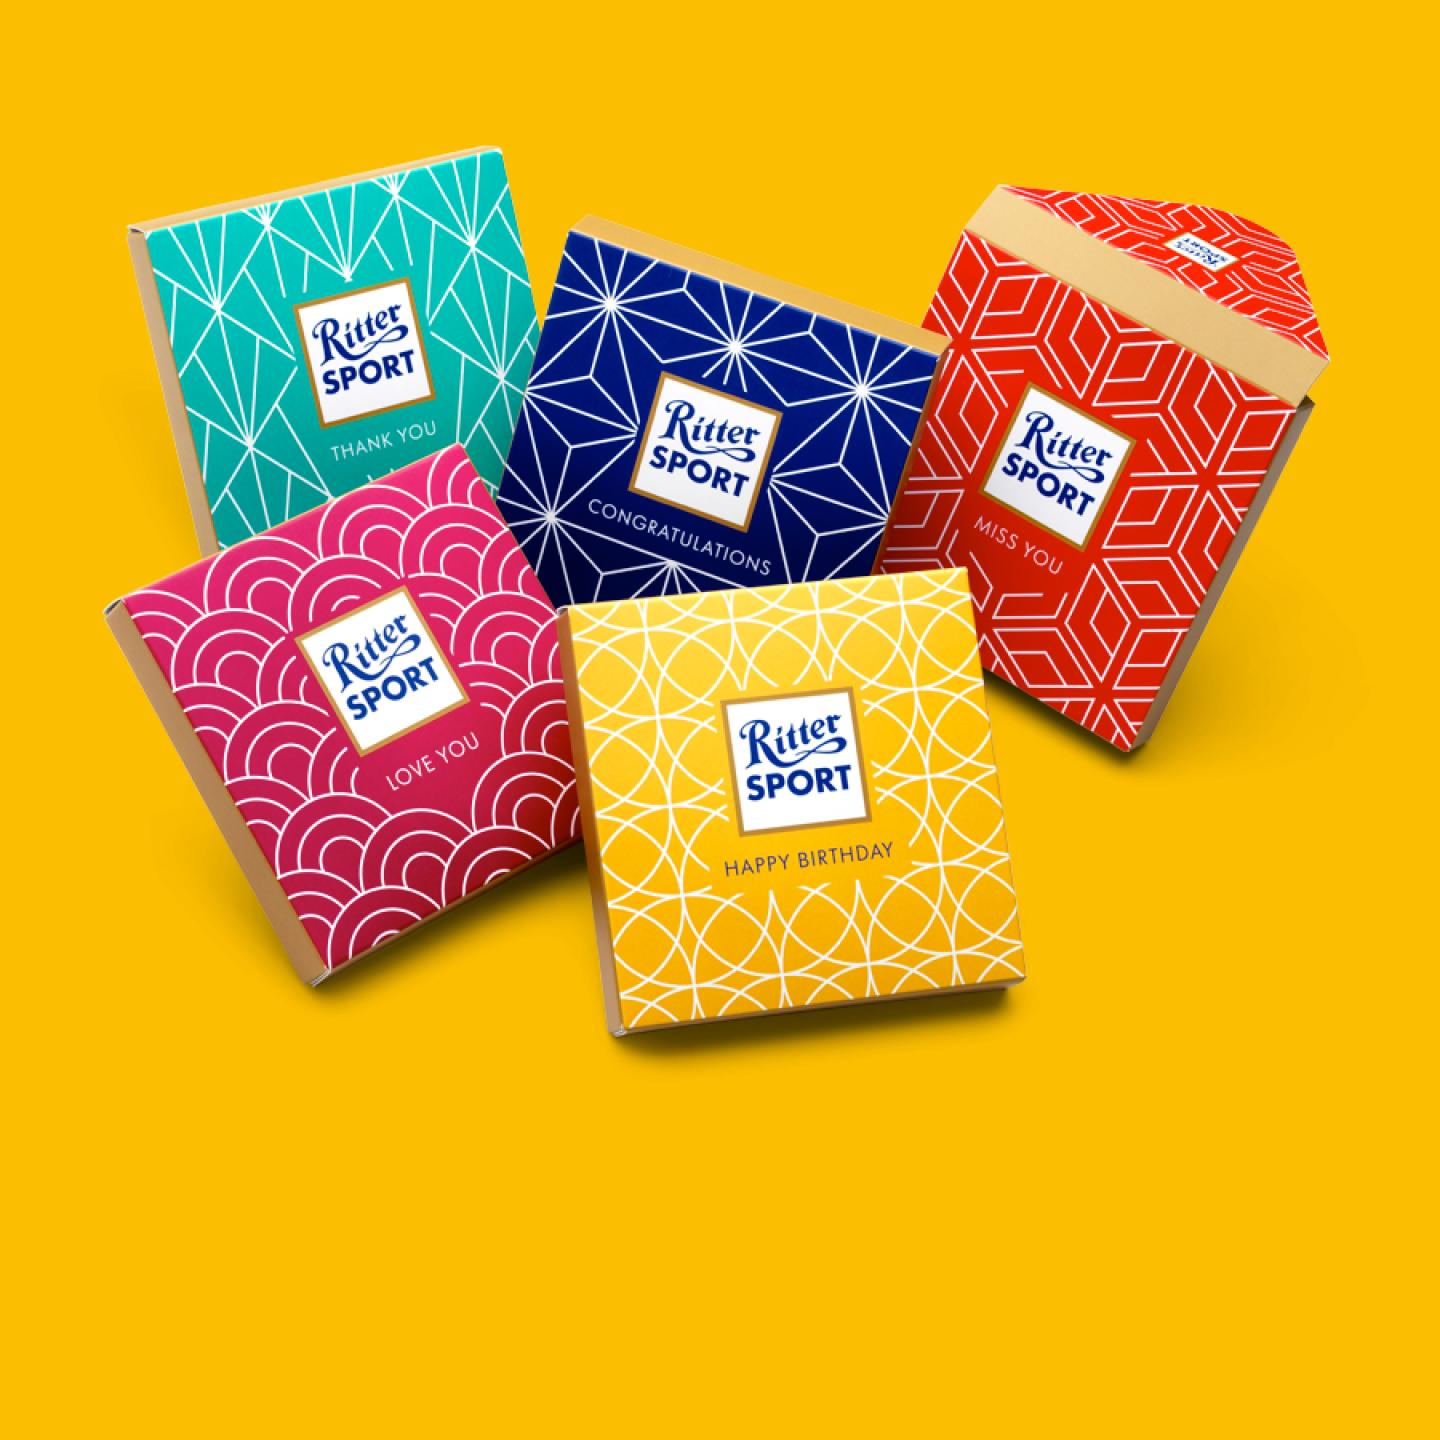 Gift Wrappers from Ritter Sport